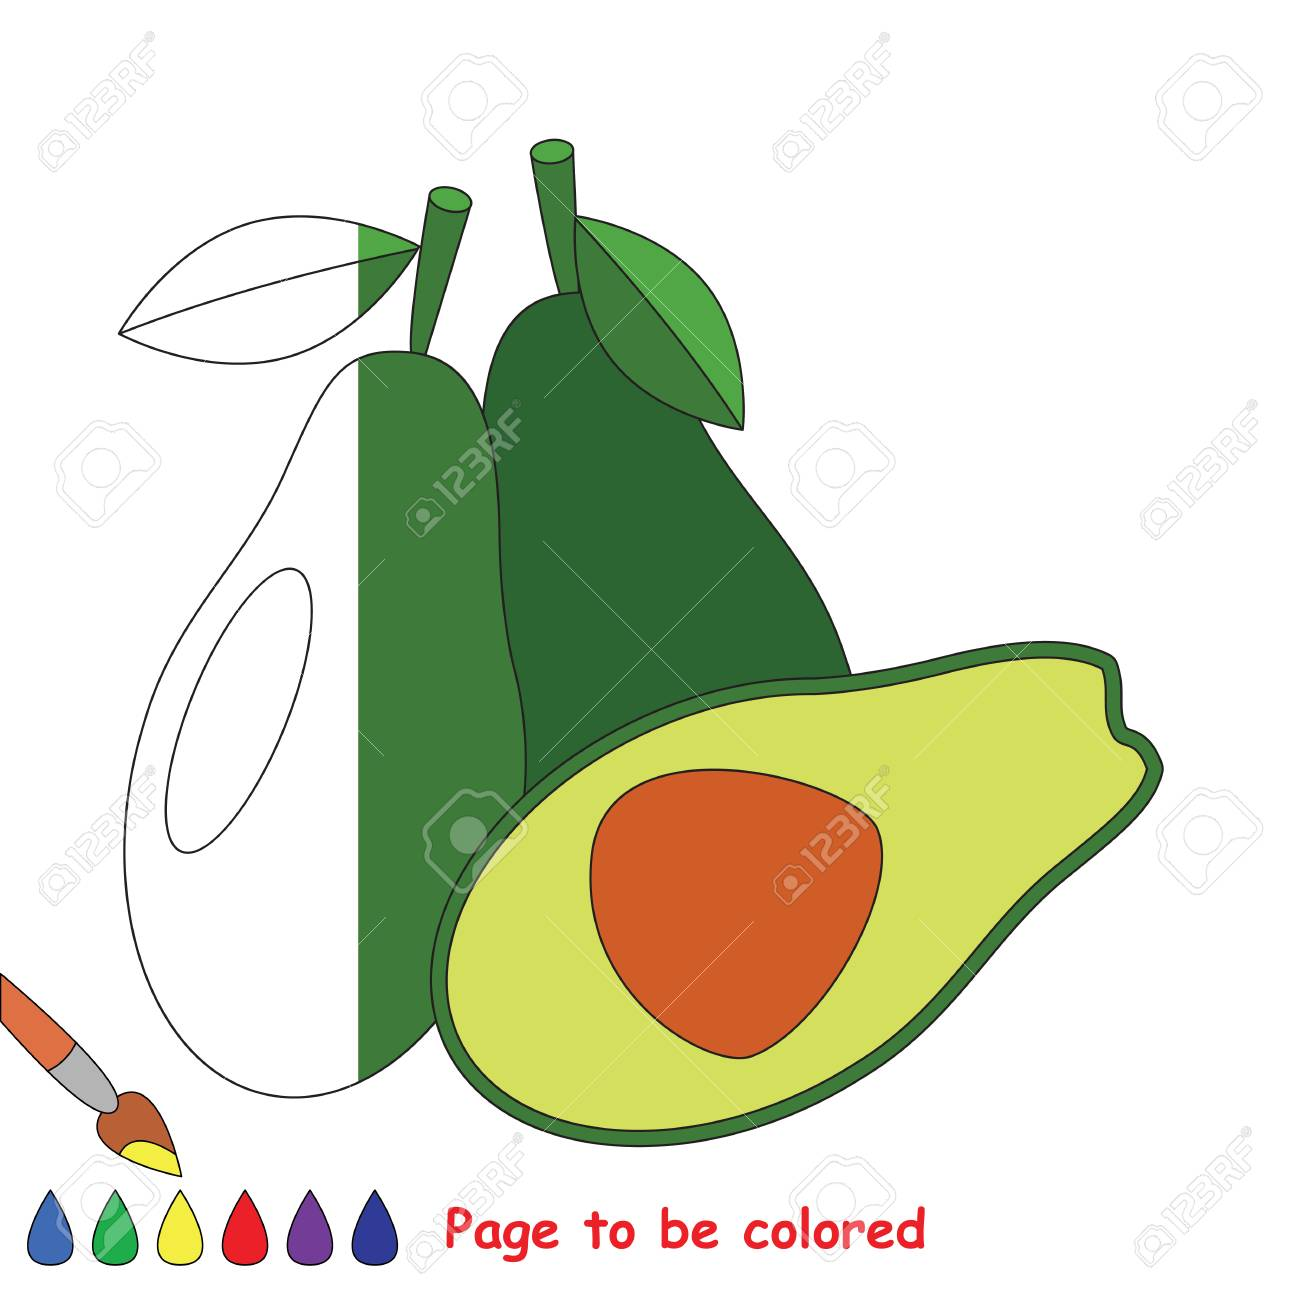 Avocado To Be Colored, The Coloring Book To Educate Preschool ...